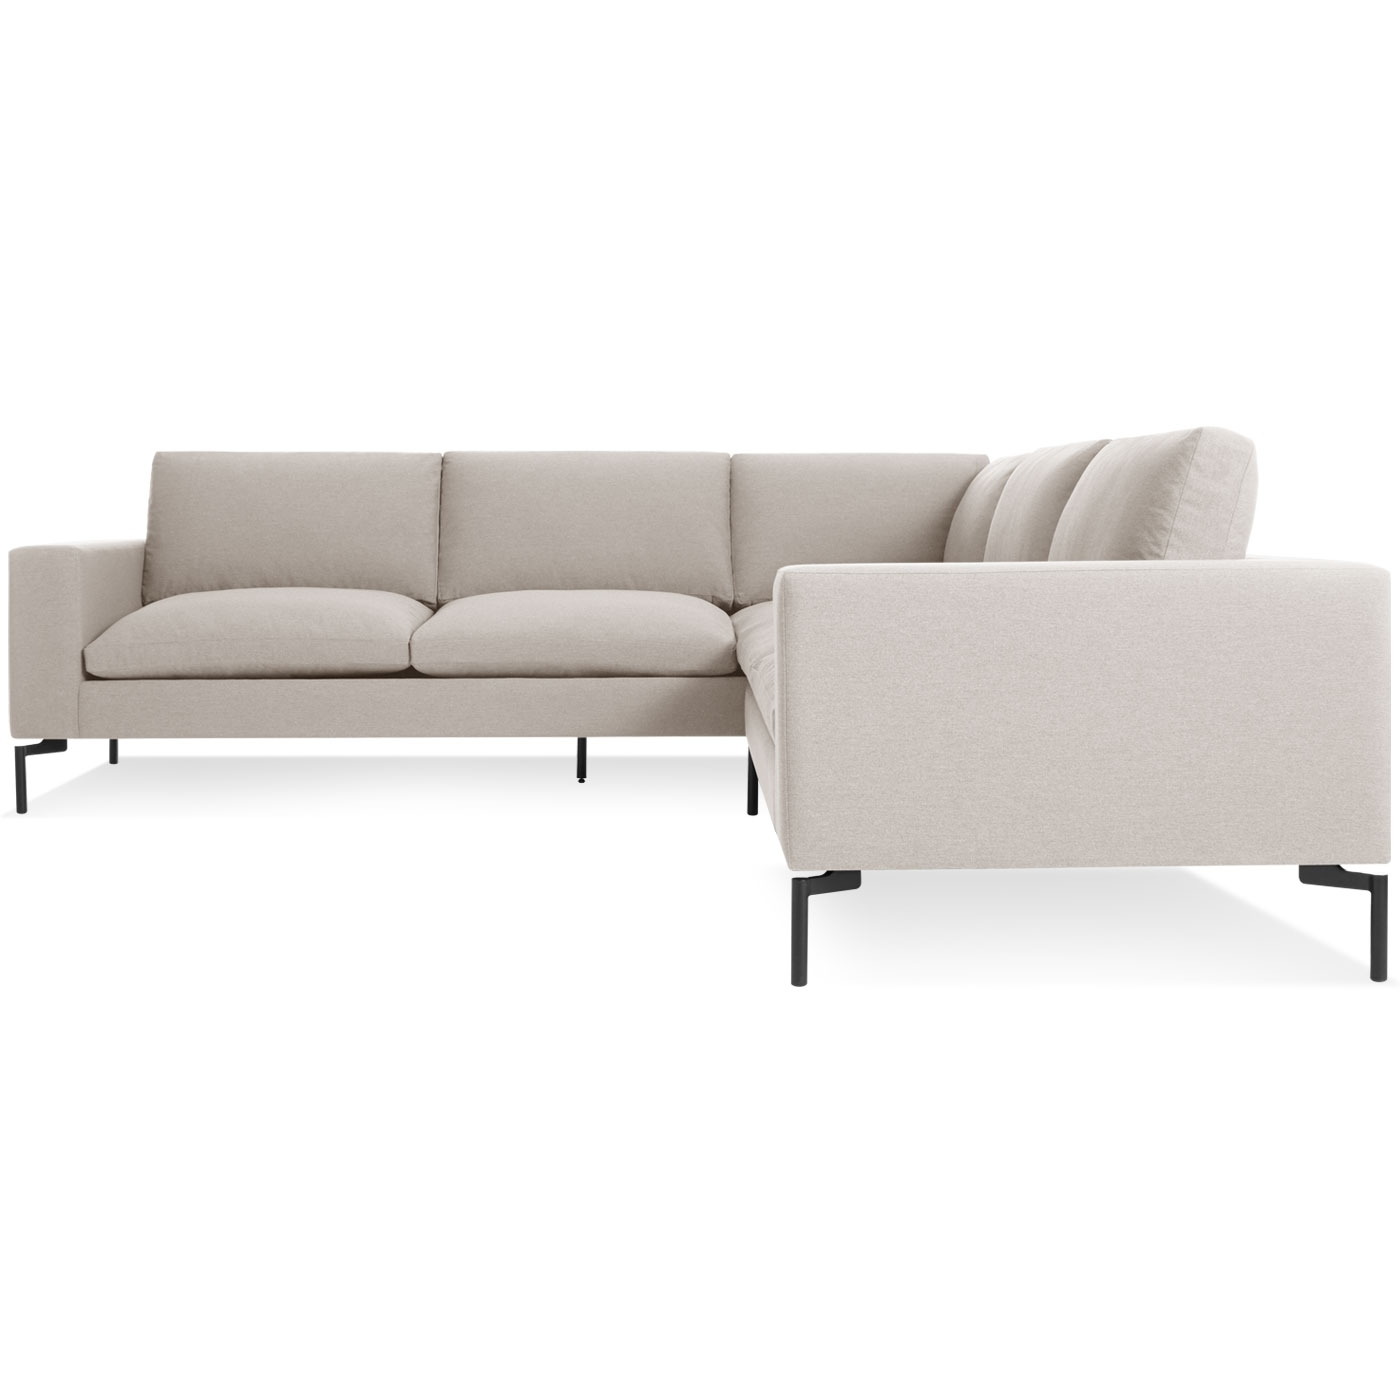 sofa furniture for sale in the philippines long modern sectional sofas 10 ideas of